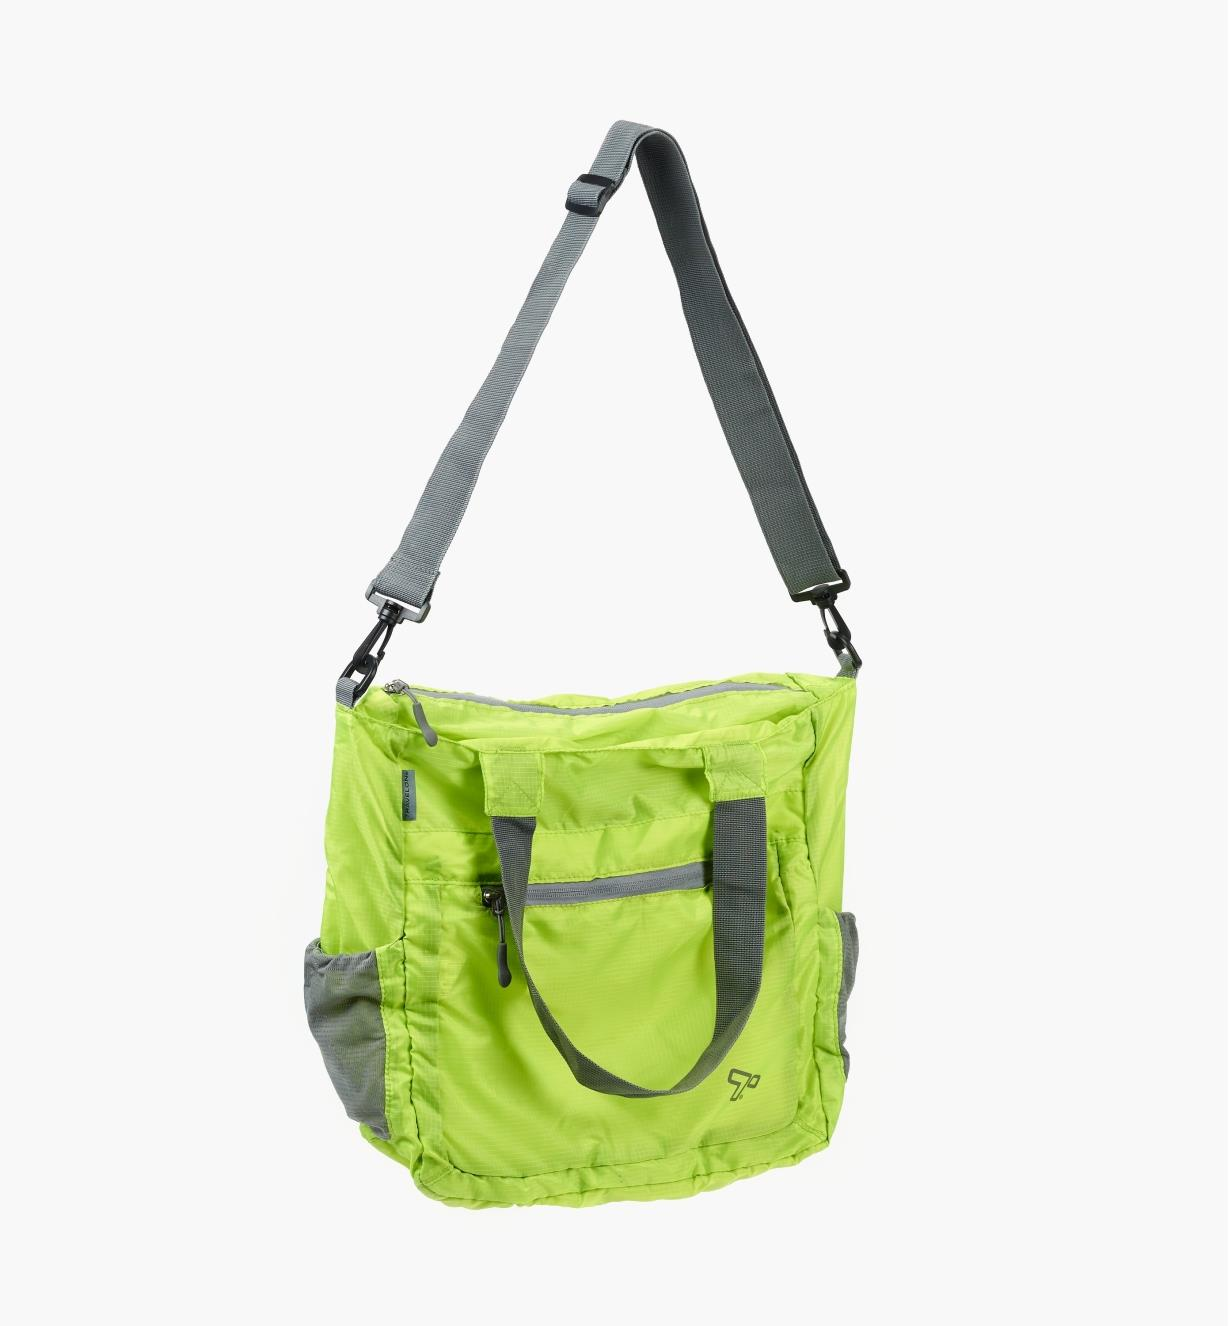 99W7693 - Packable Shoulder Bag, Lime